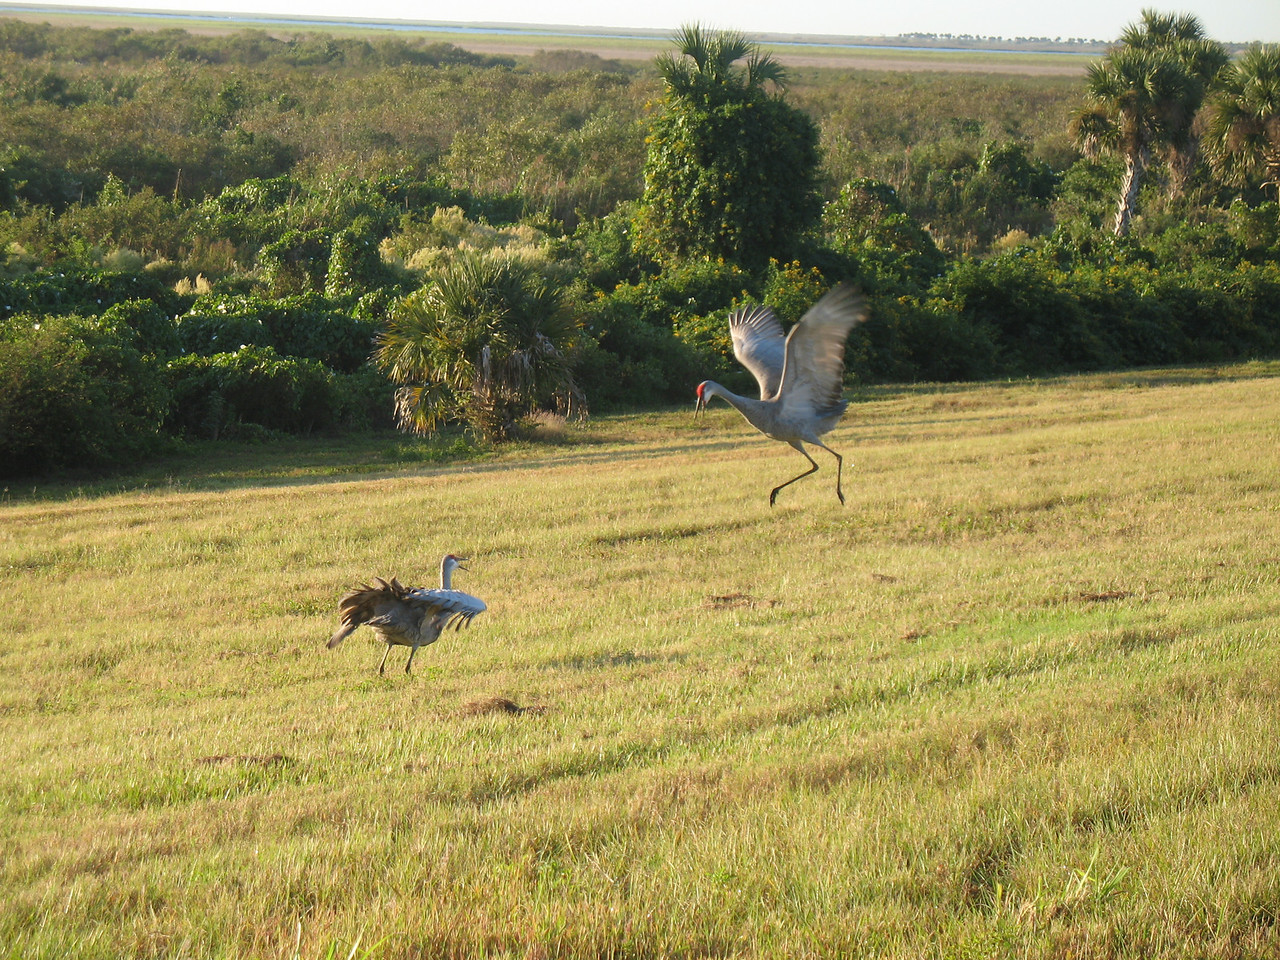 Sandhill cranes dance atop the dike at Okeechobee<br /> PHOTO CREDIT: Sandra Friend / Florida Trail Association